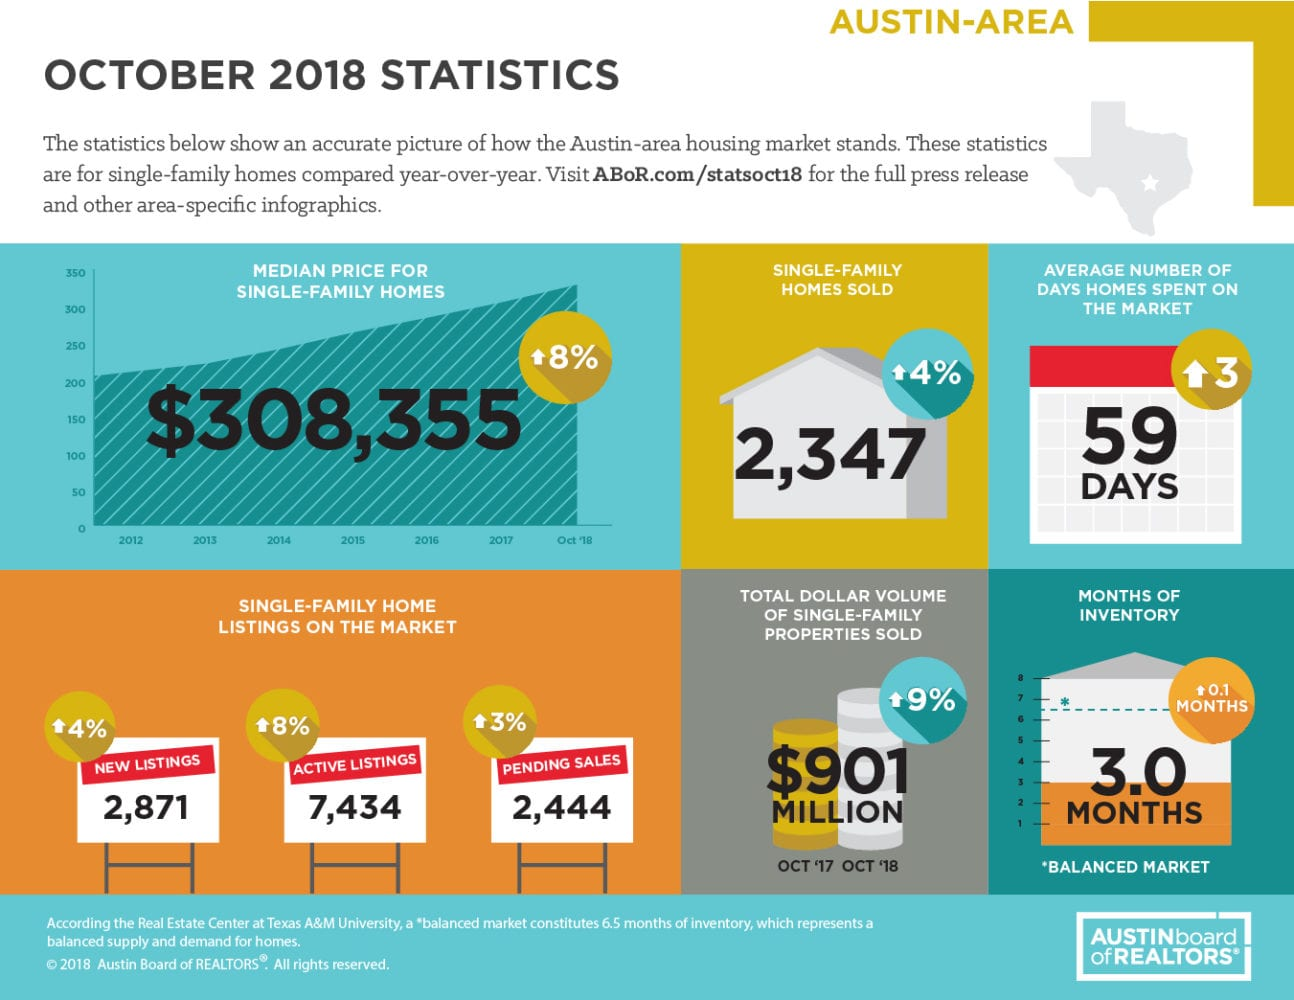 October 2018 ABOR Market Statistics